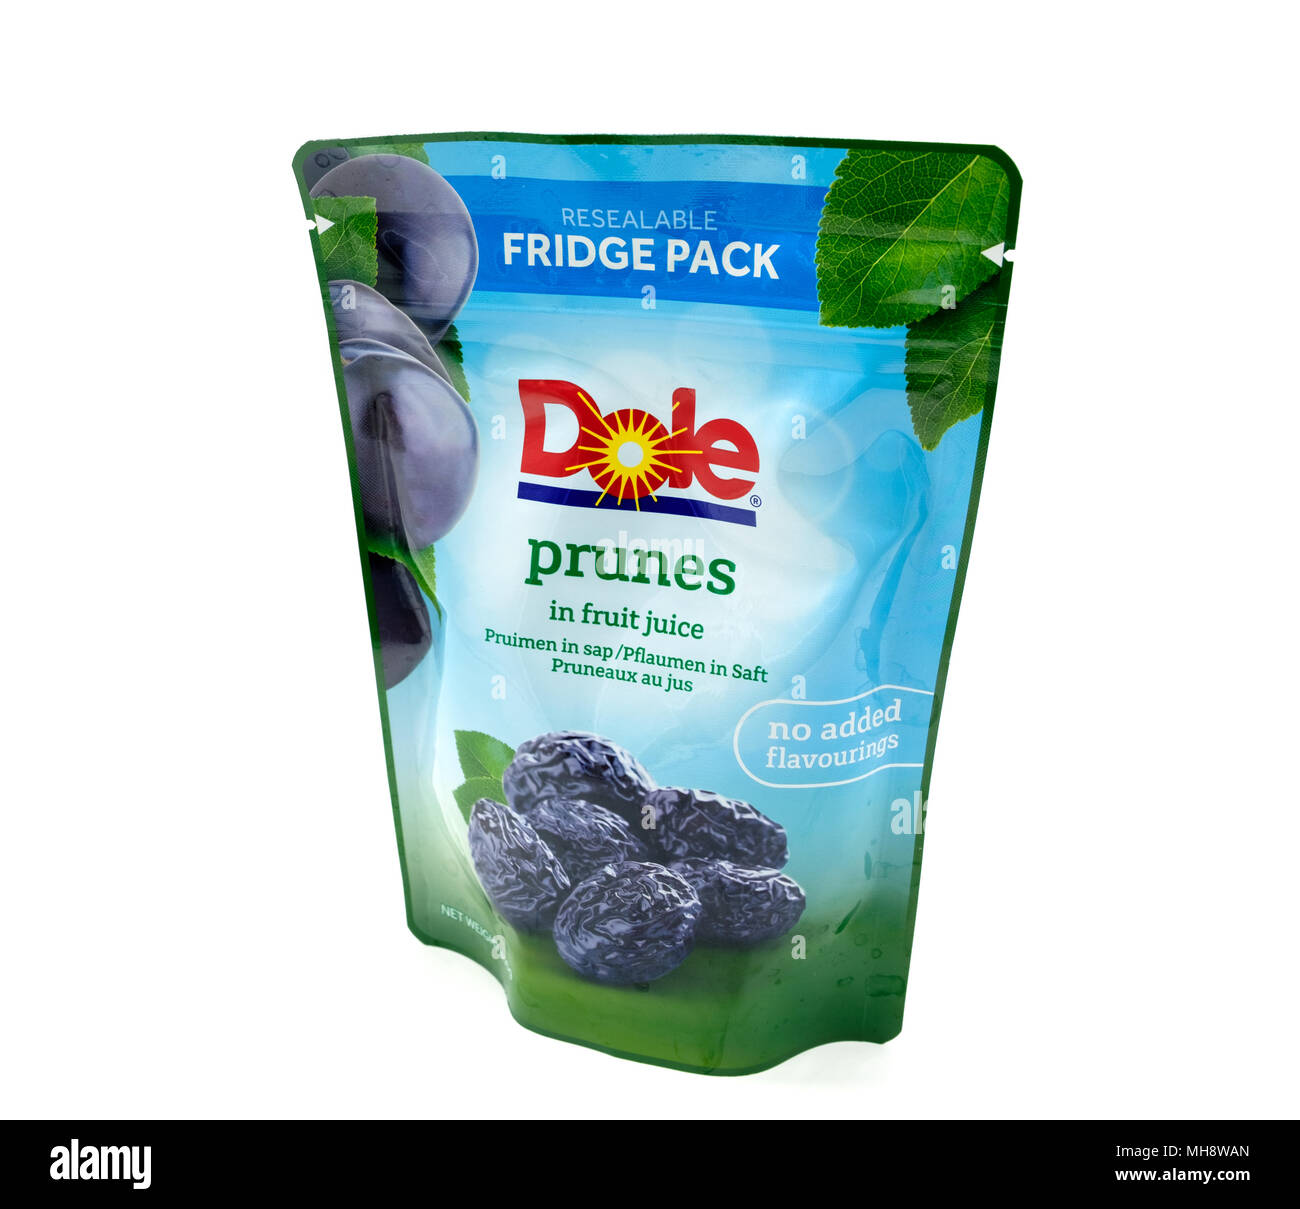 Largs, SCotland, UK - April 25, 2018:                                       A Packet of Dole Prunes in a Recyclable Package in agreement with UK Gover - Stock Image